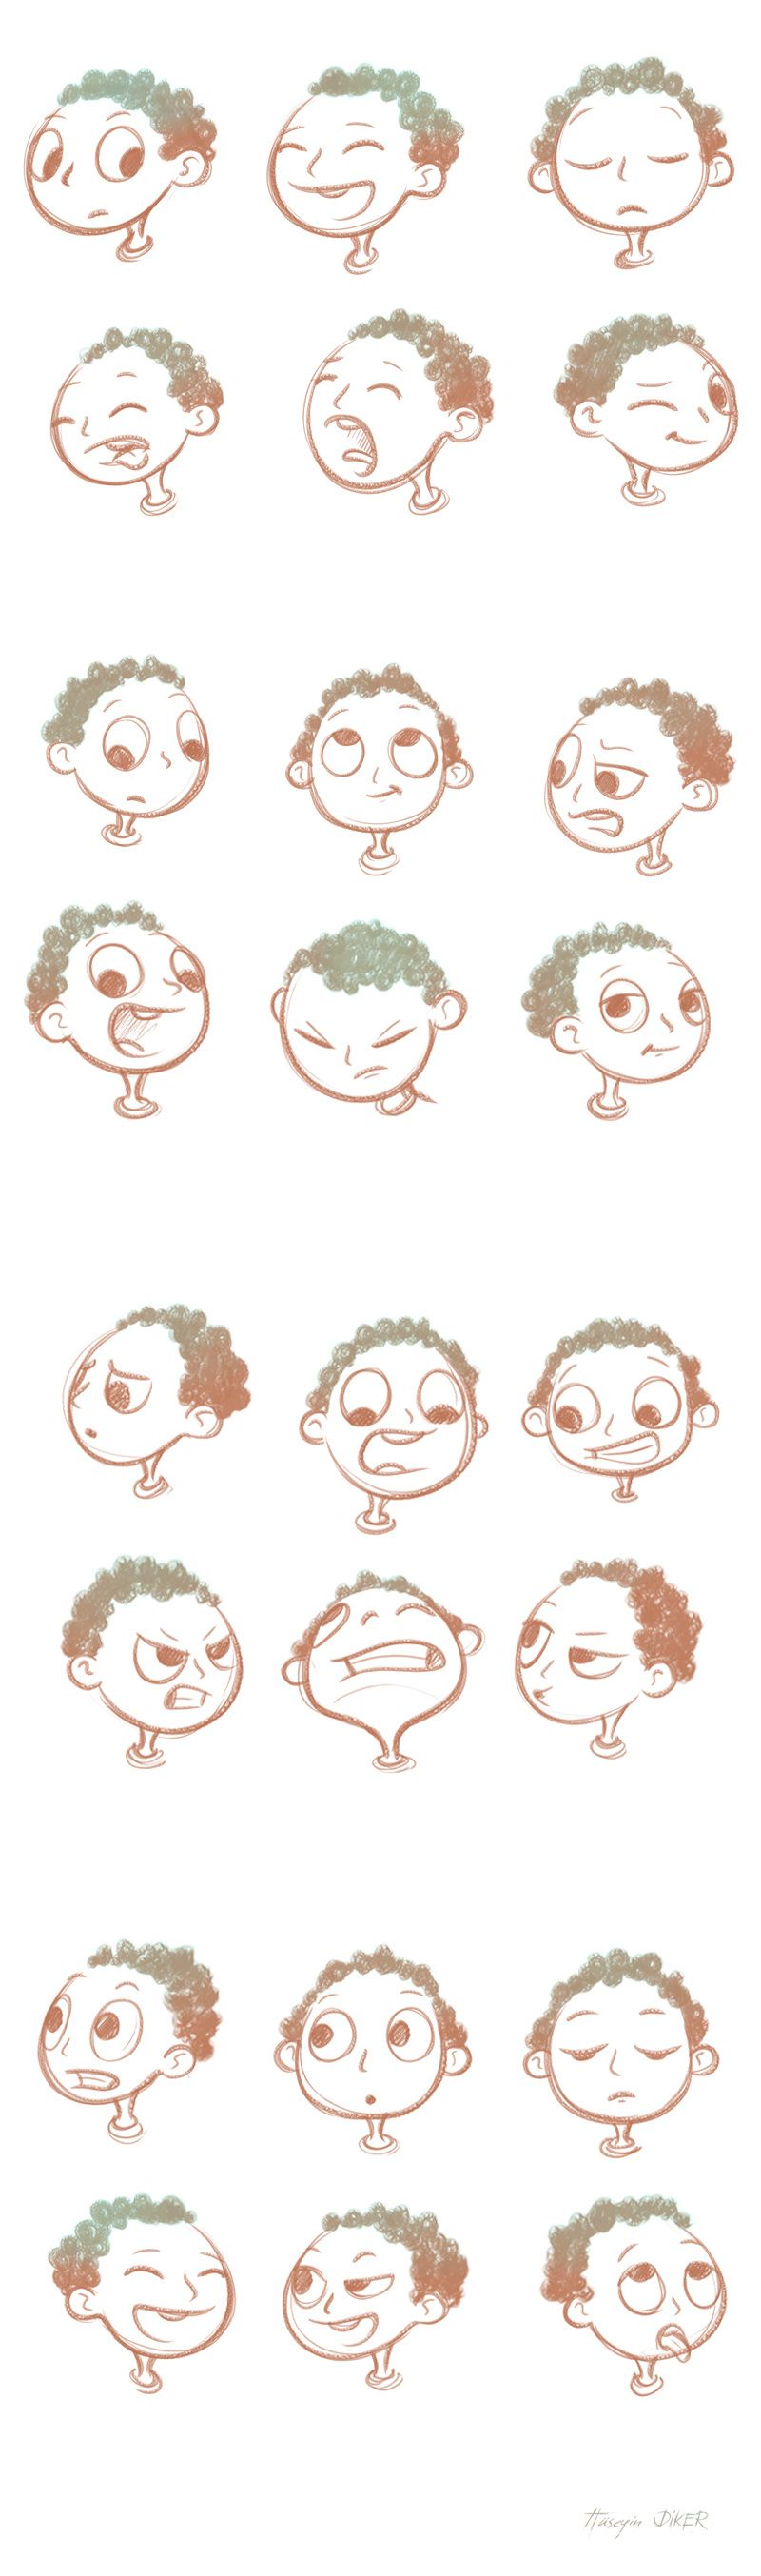 800x2707 Face Expressions Sketch On Behance